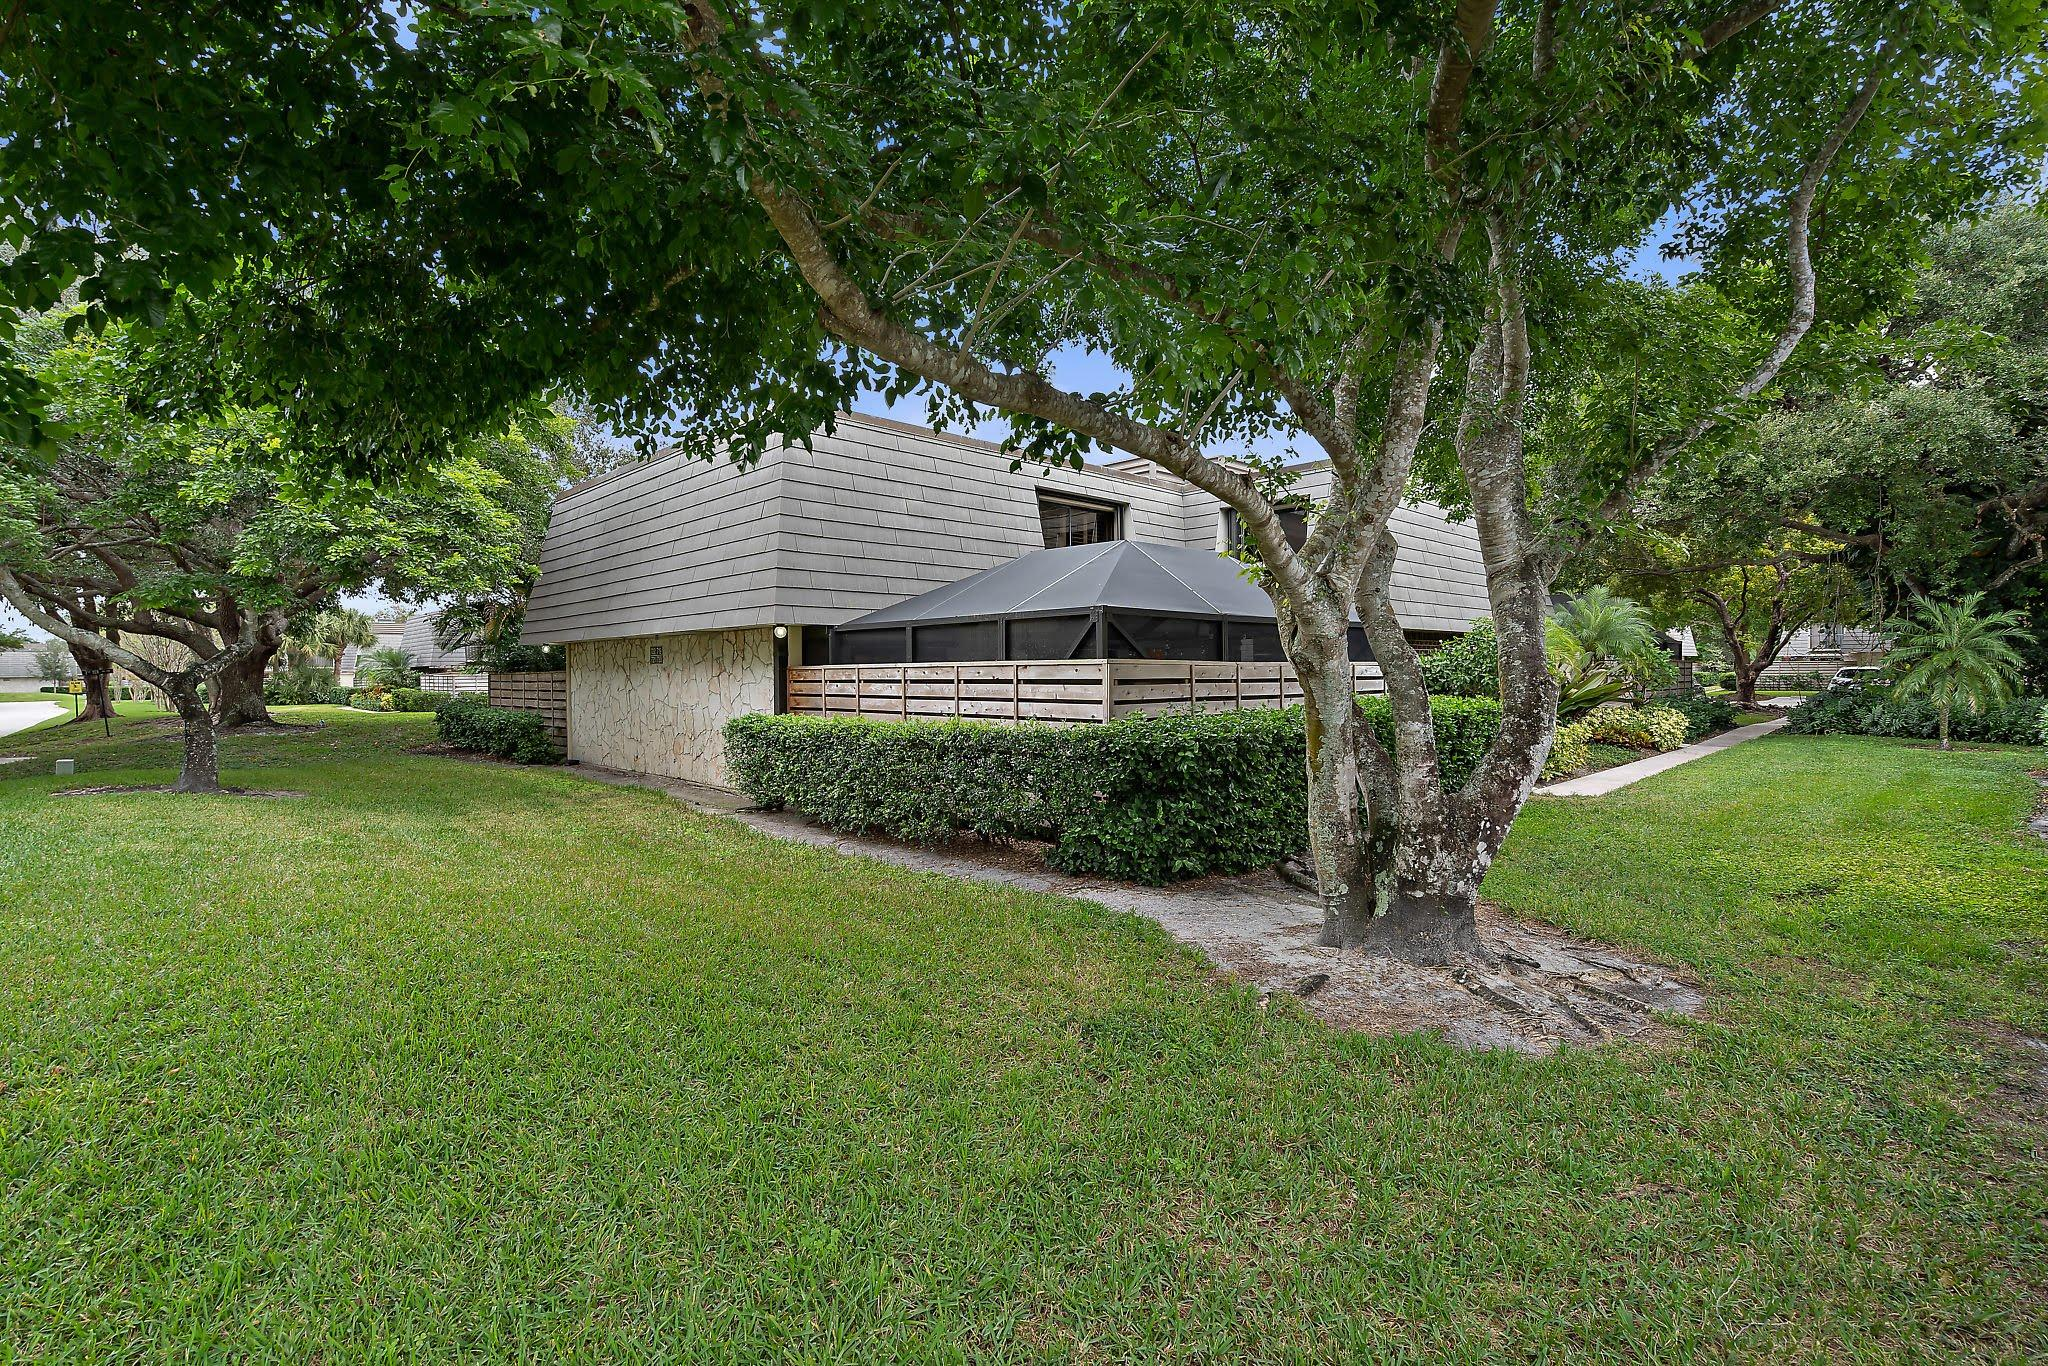 New Home for sale at 720 7th Terrace in Palm Beach Gardens